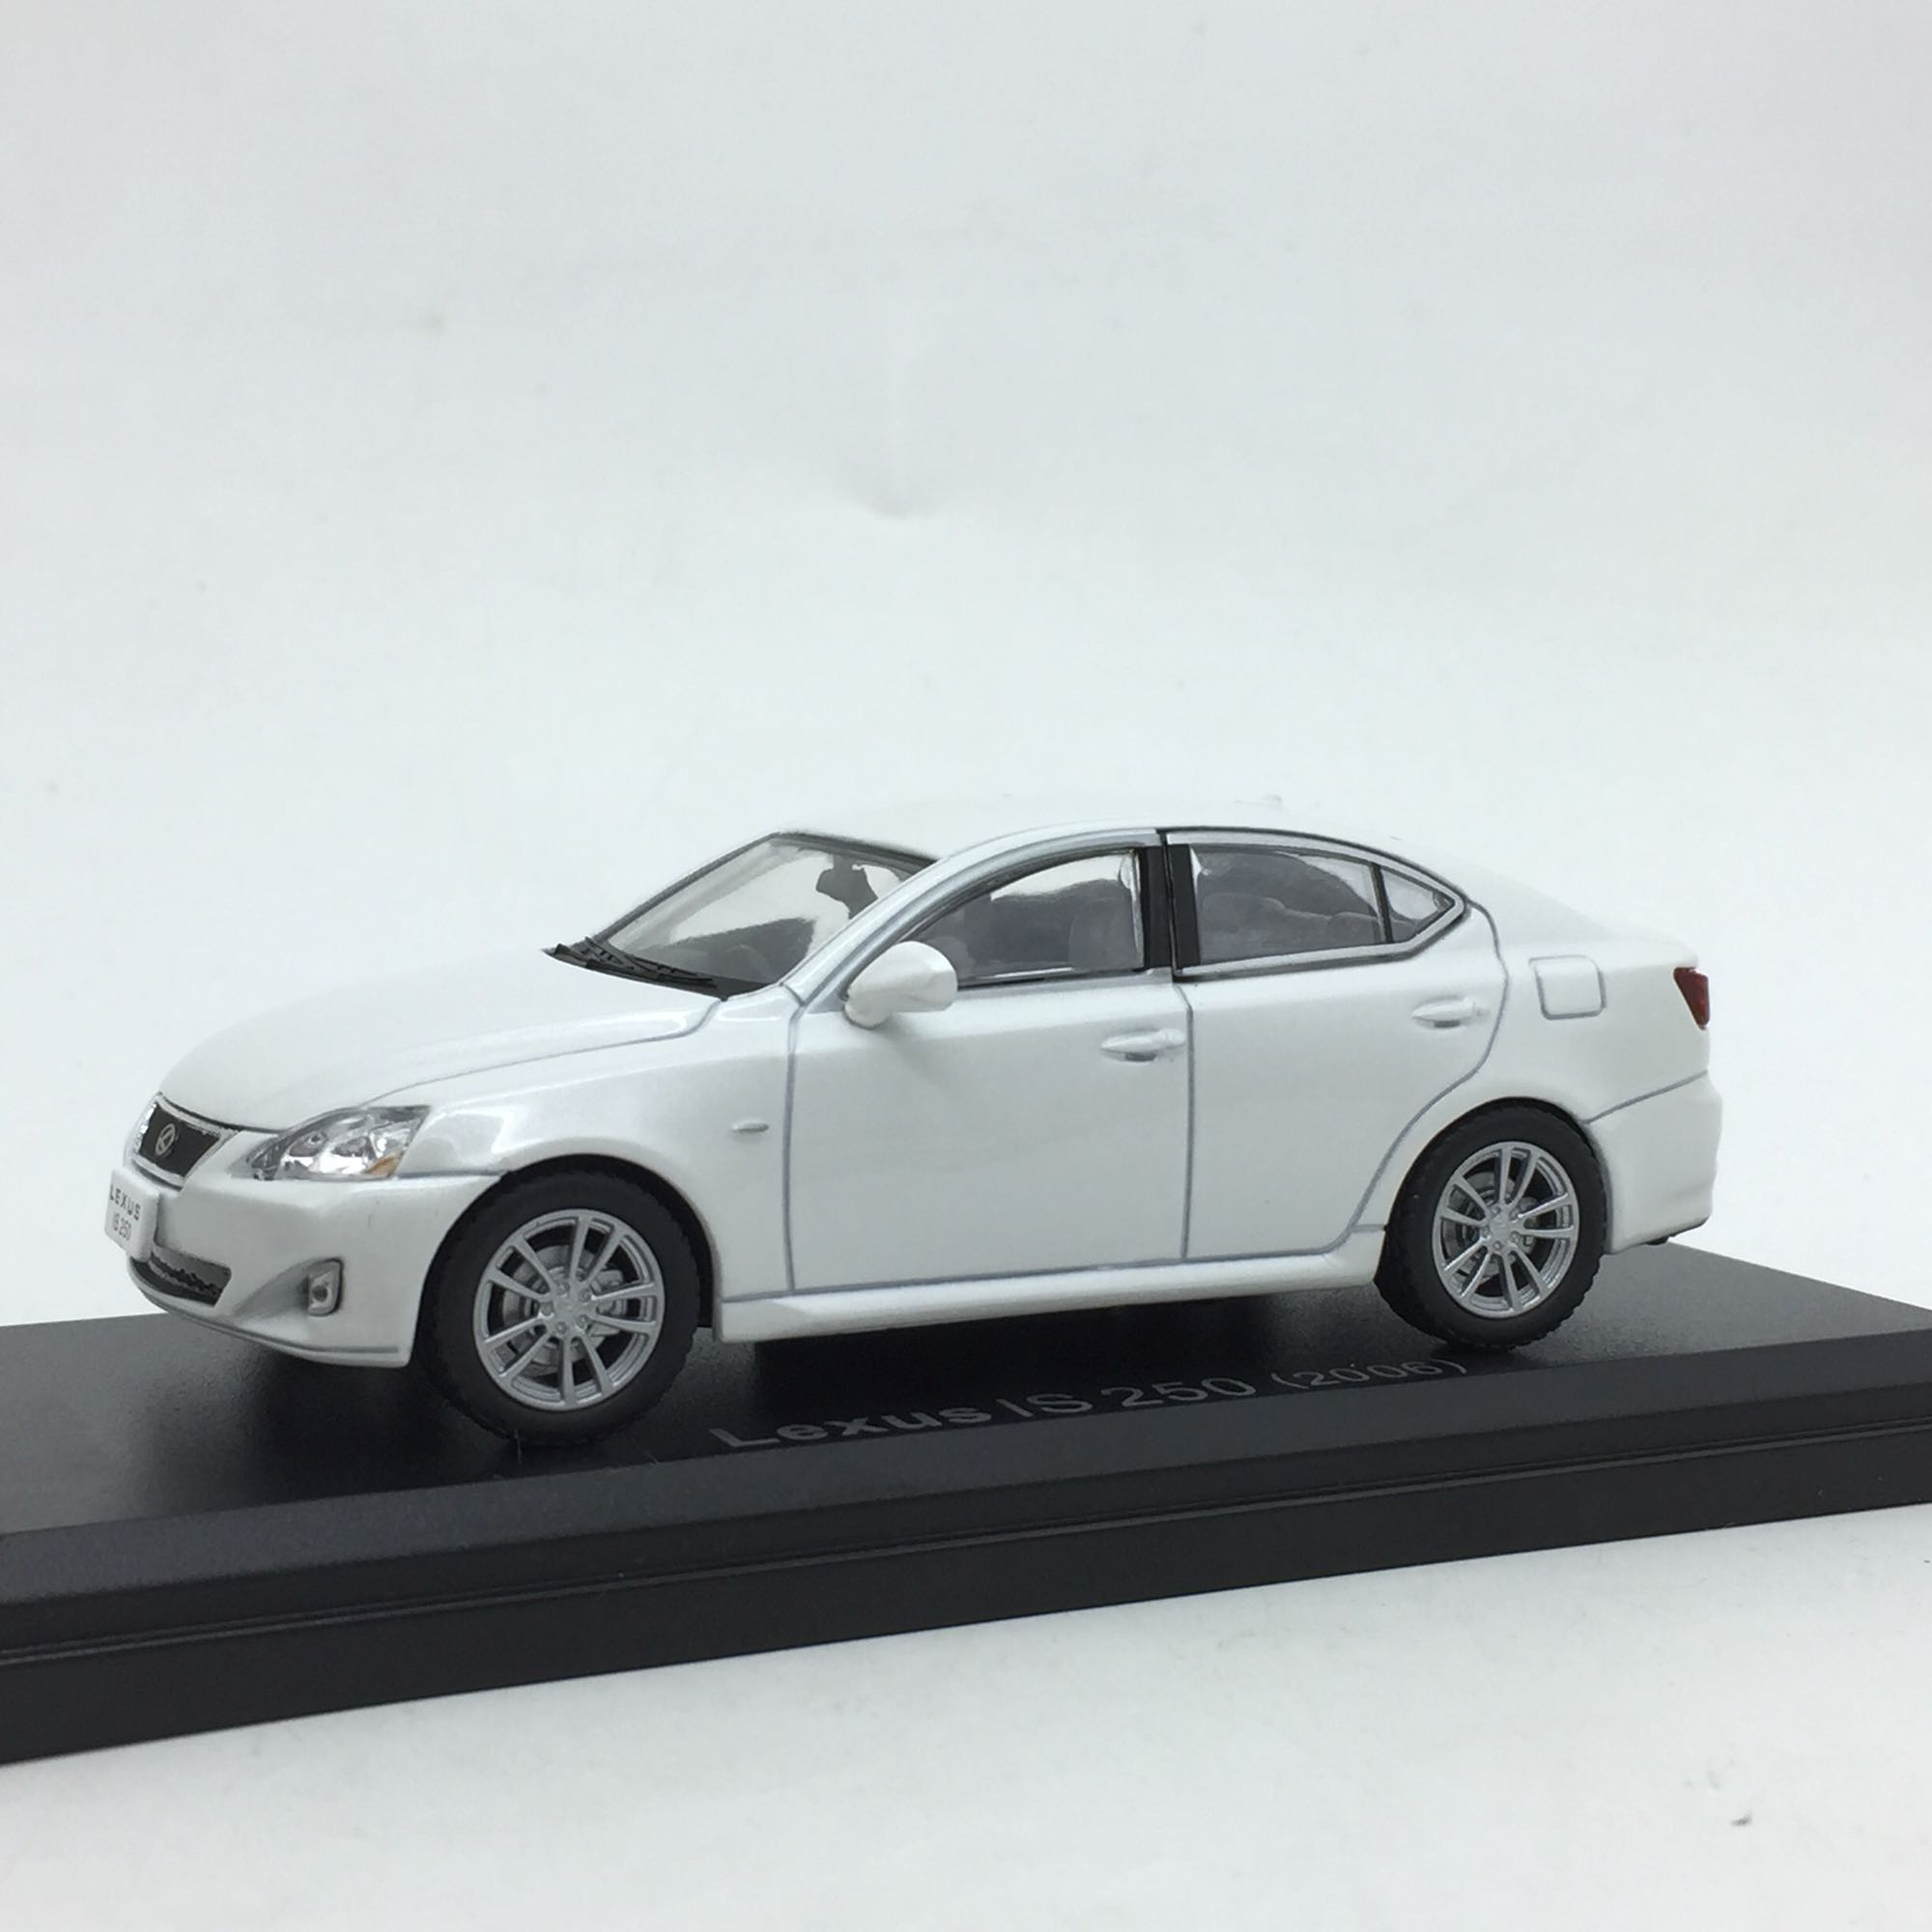 1:43 Lexus IS Alloy Car Model 11cm For Gift Toys